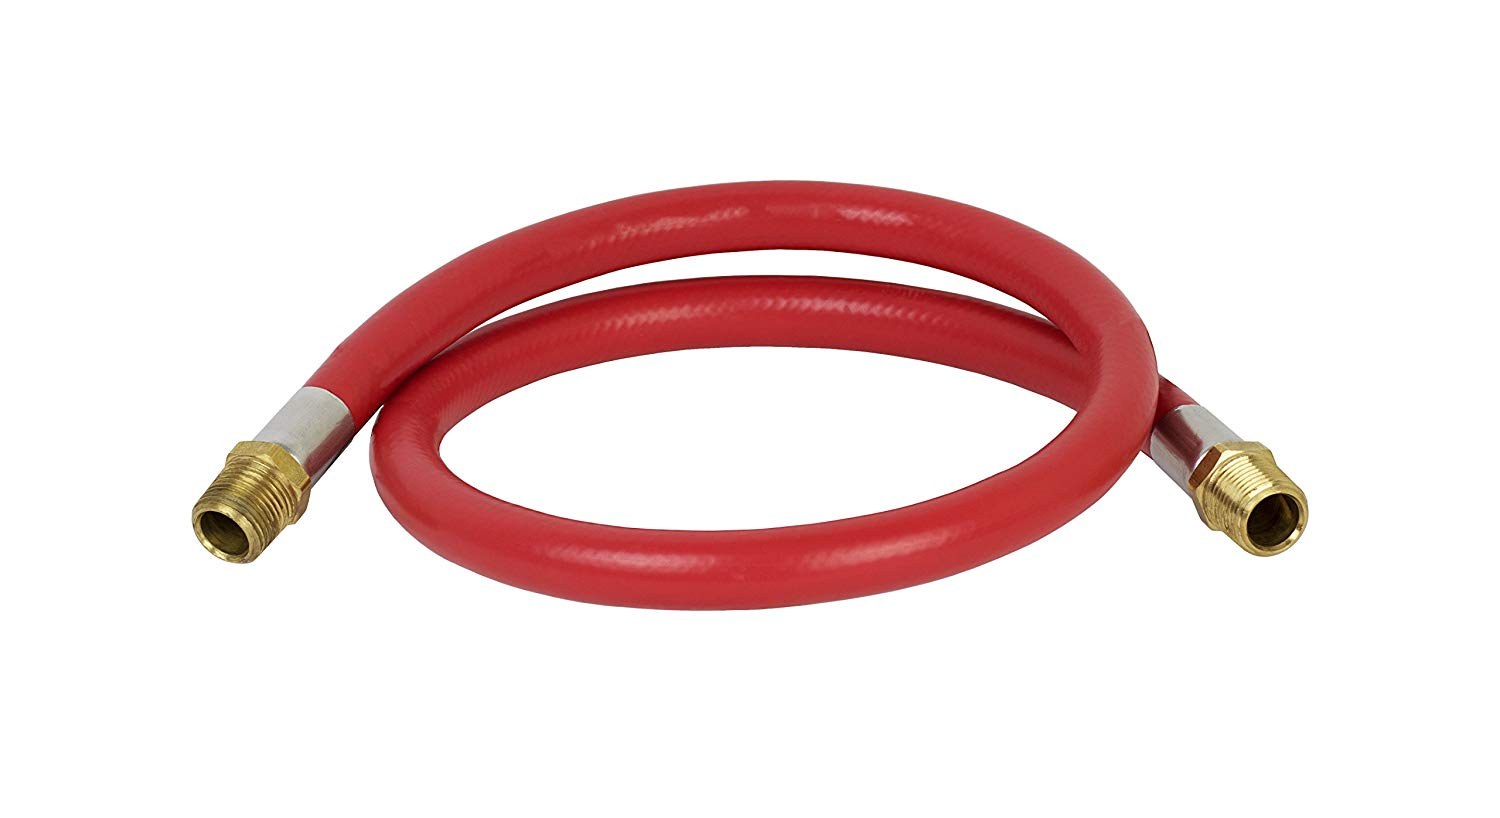 """PneumaticPlus RED EPDM Synthetic Rubber Air & Water Hose 1/2"""" OD with 1/2"""" NPT Swivel Male Fitting Connections (3 FT)"""